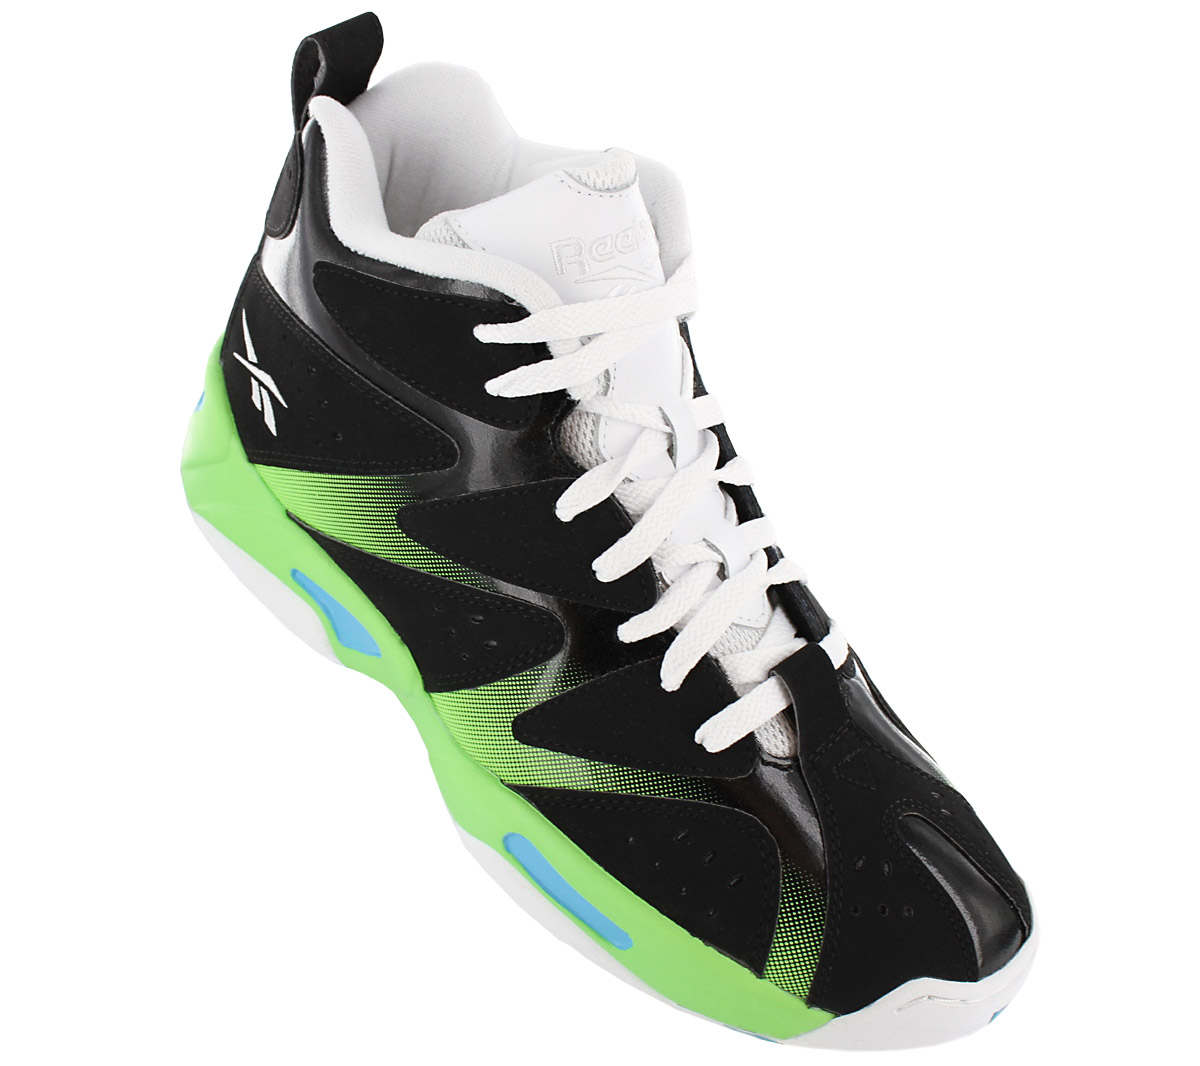 first rate 49489 2be4c NEW Reebok Kamikaze I Mid M43287 Mens Shoes Trainers Sneakers SALE